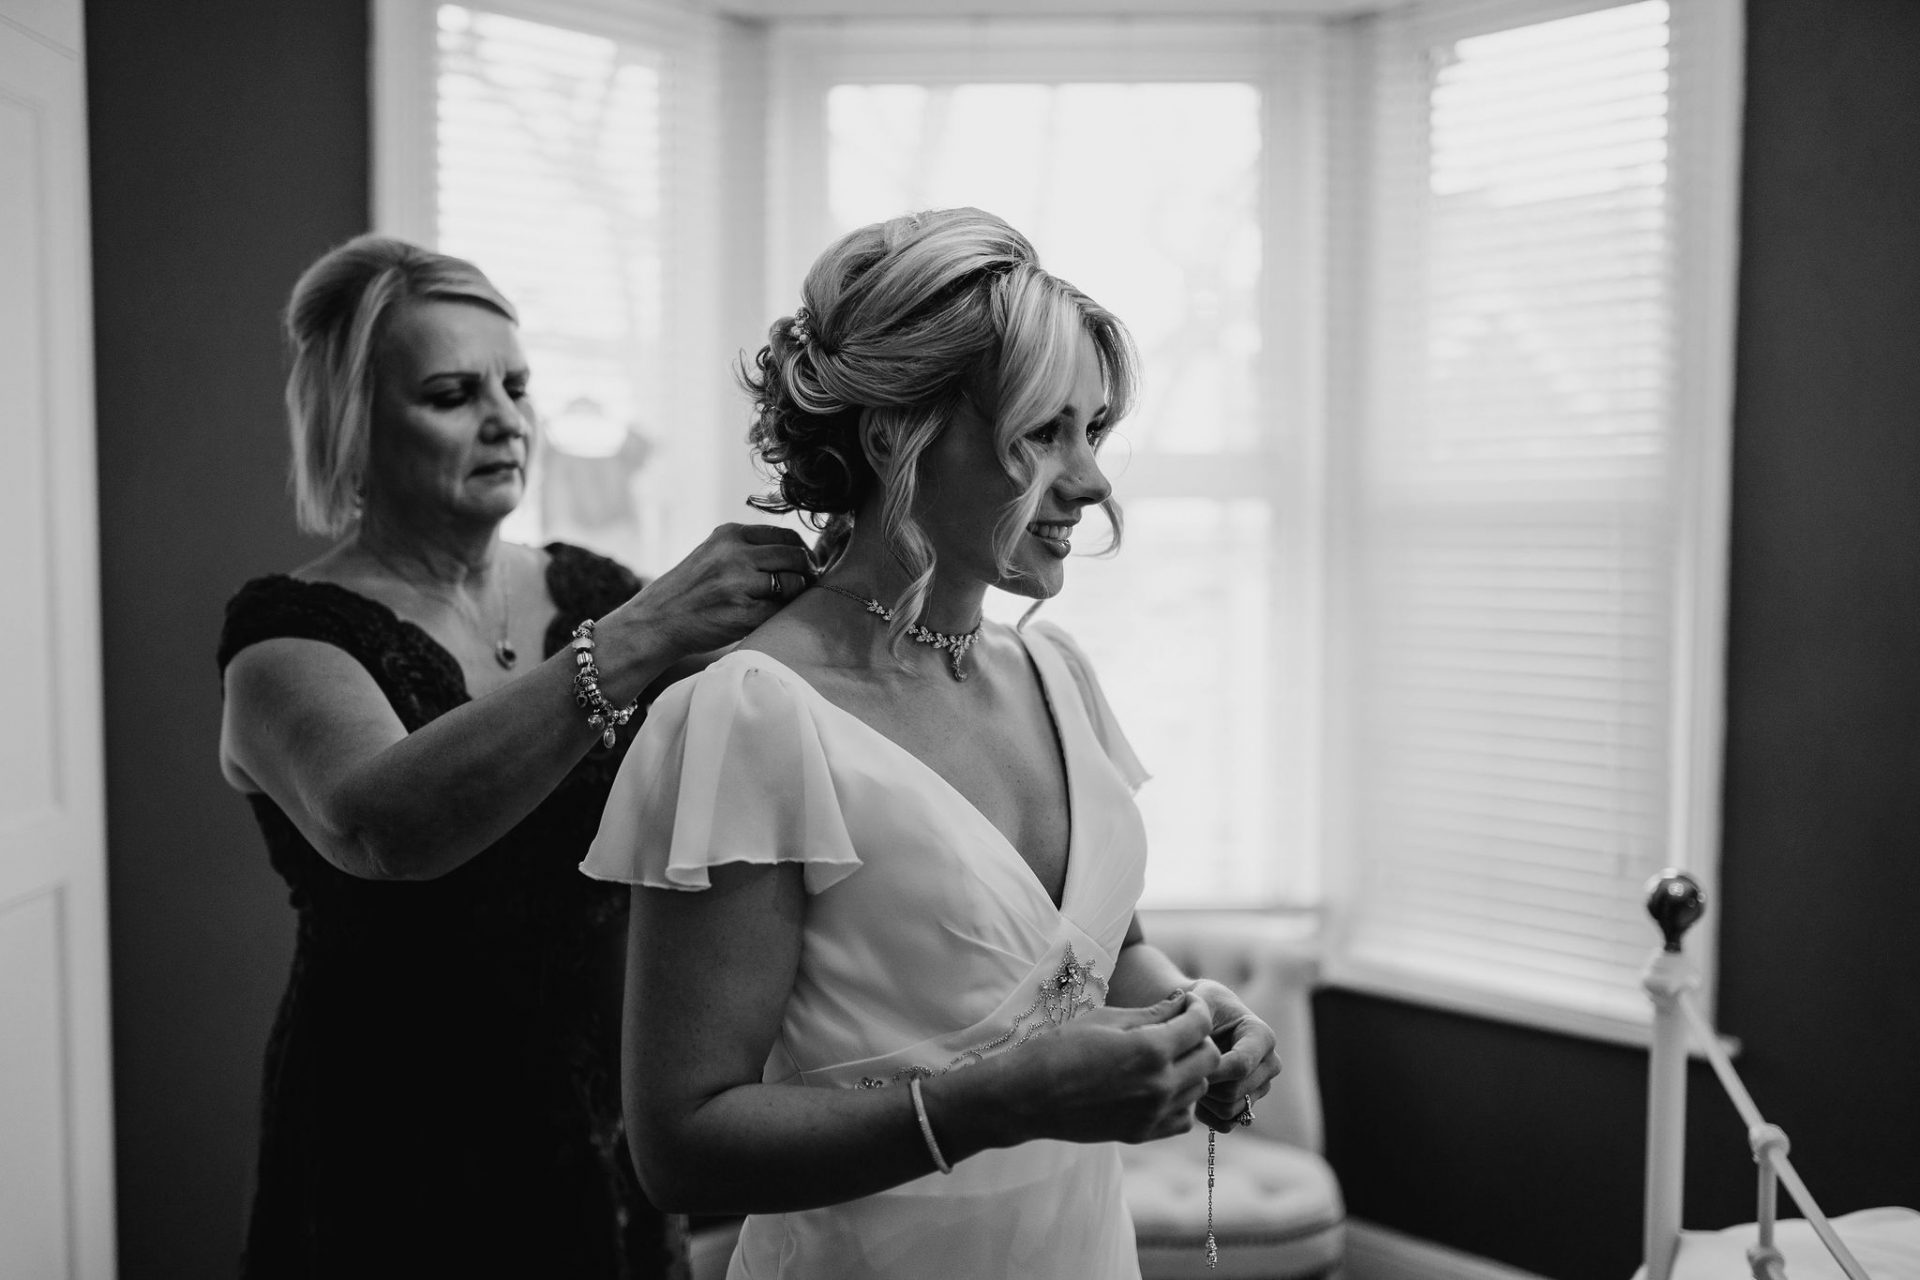 mother of the bride putting on the bride's necklace